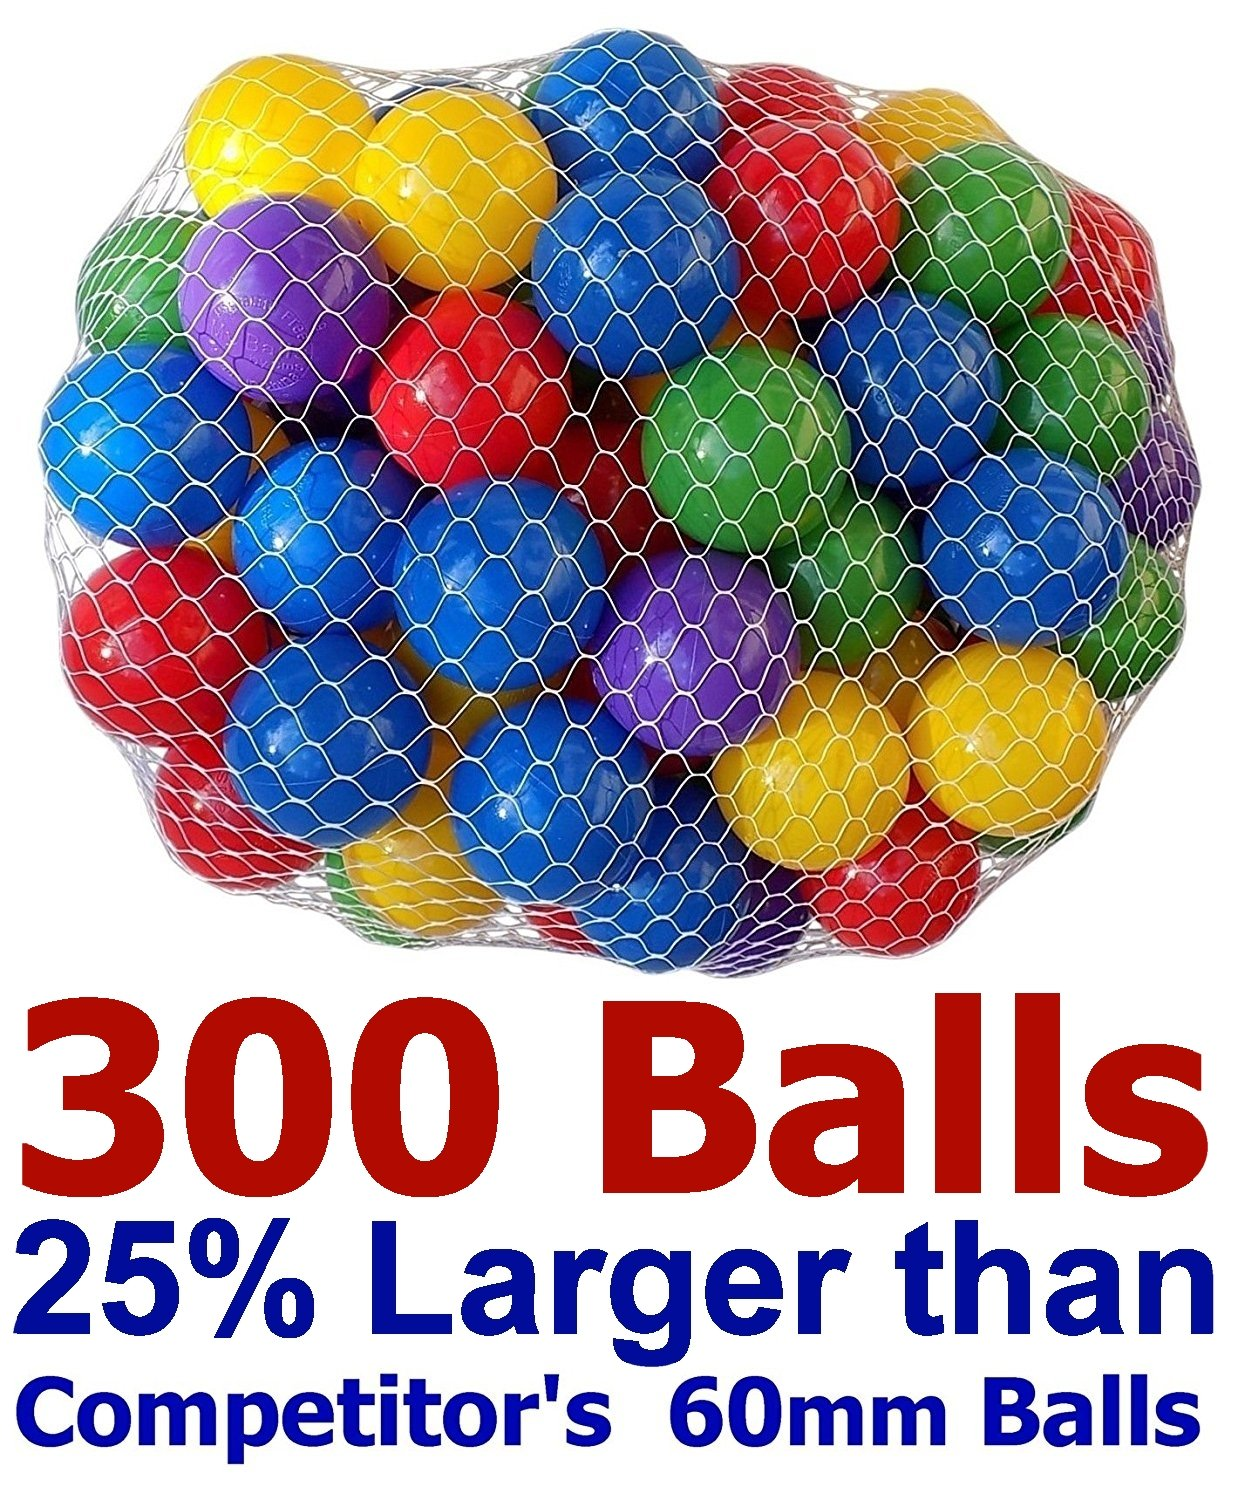 Pack of 300 Large Size 2.5'' Crush-Proof Ball Pit Balls - 5 Colors, Phthalate Free; BPA Free, Non-Toxic, Non-Recycled Plastic (Pack of 300)